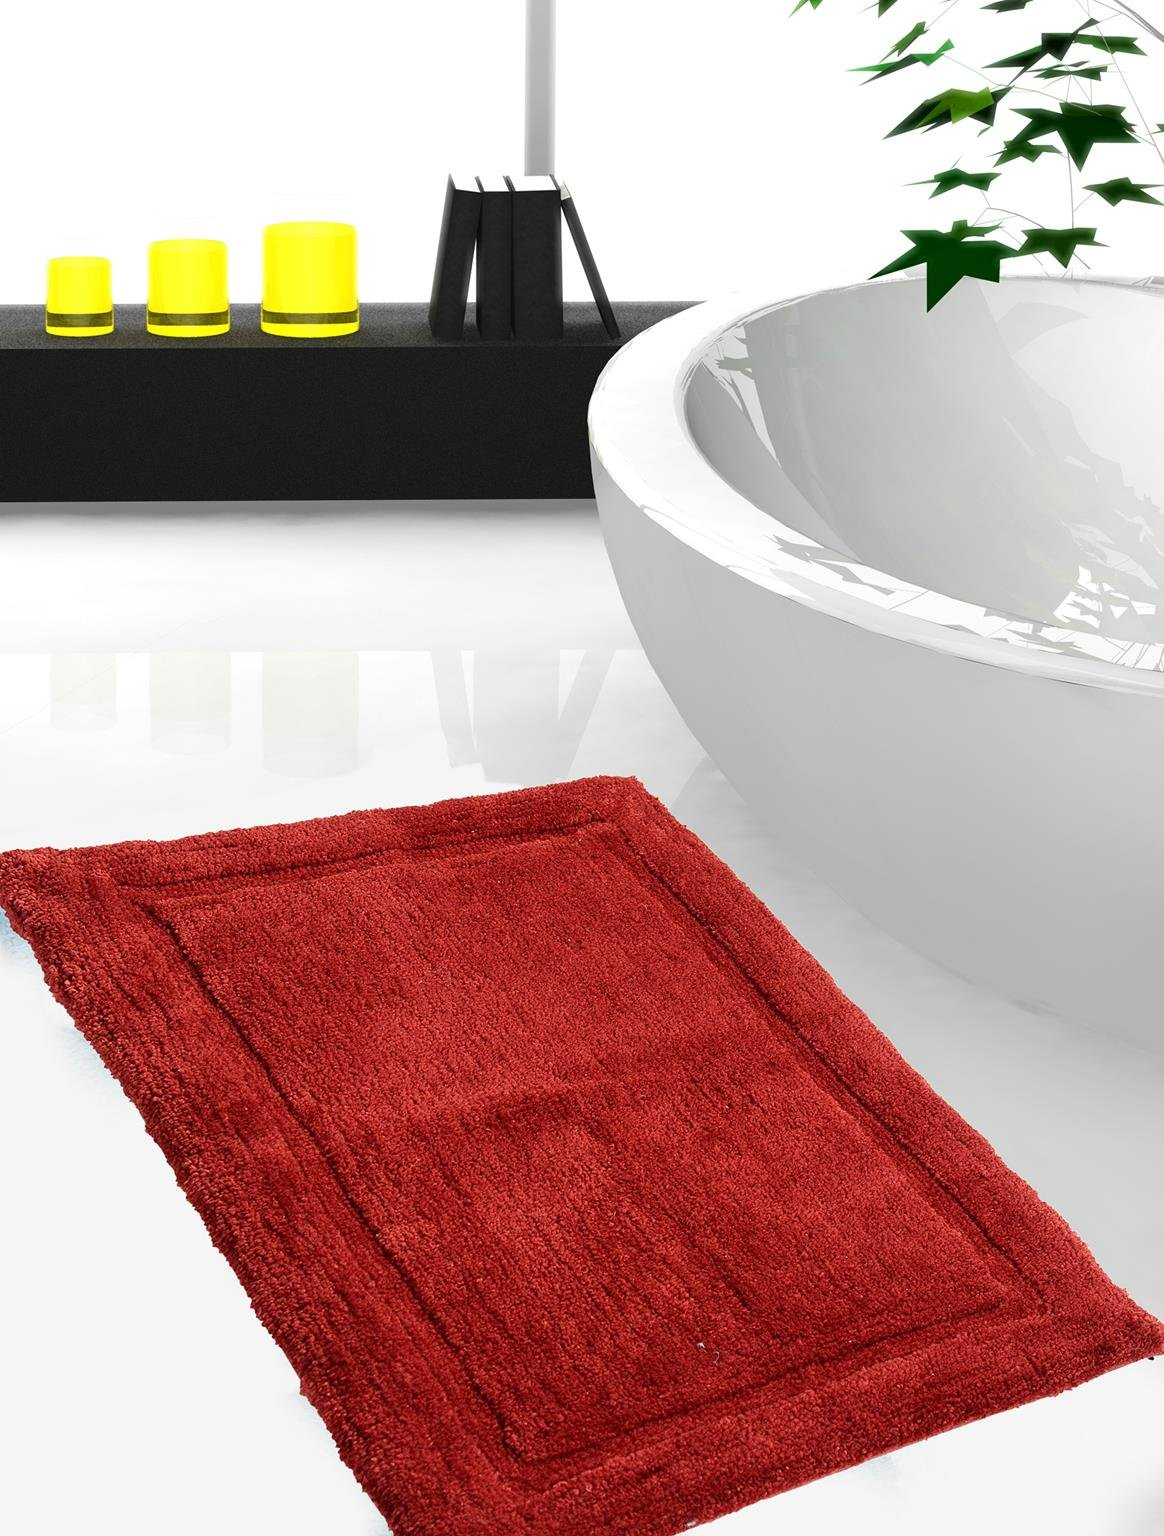 WARISI - Track Collection - Solids microfiber Bathroom, Bedroom Rug, 34 x 21 inches (Marsala) by WARISI (Image #4)